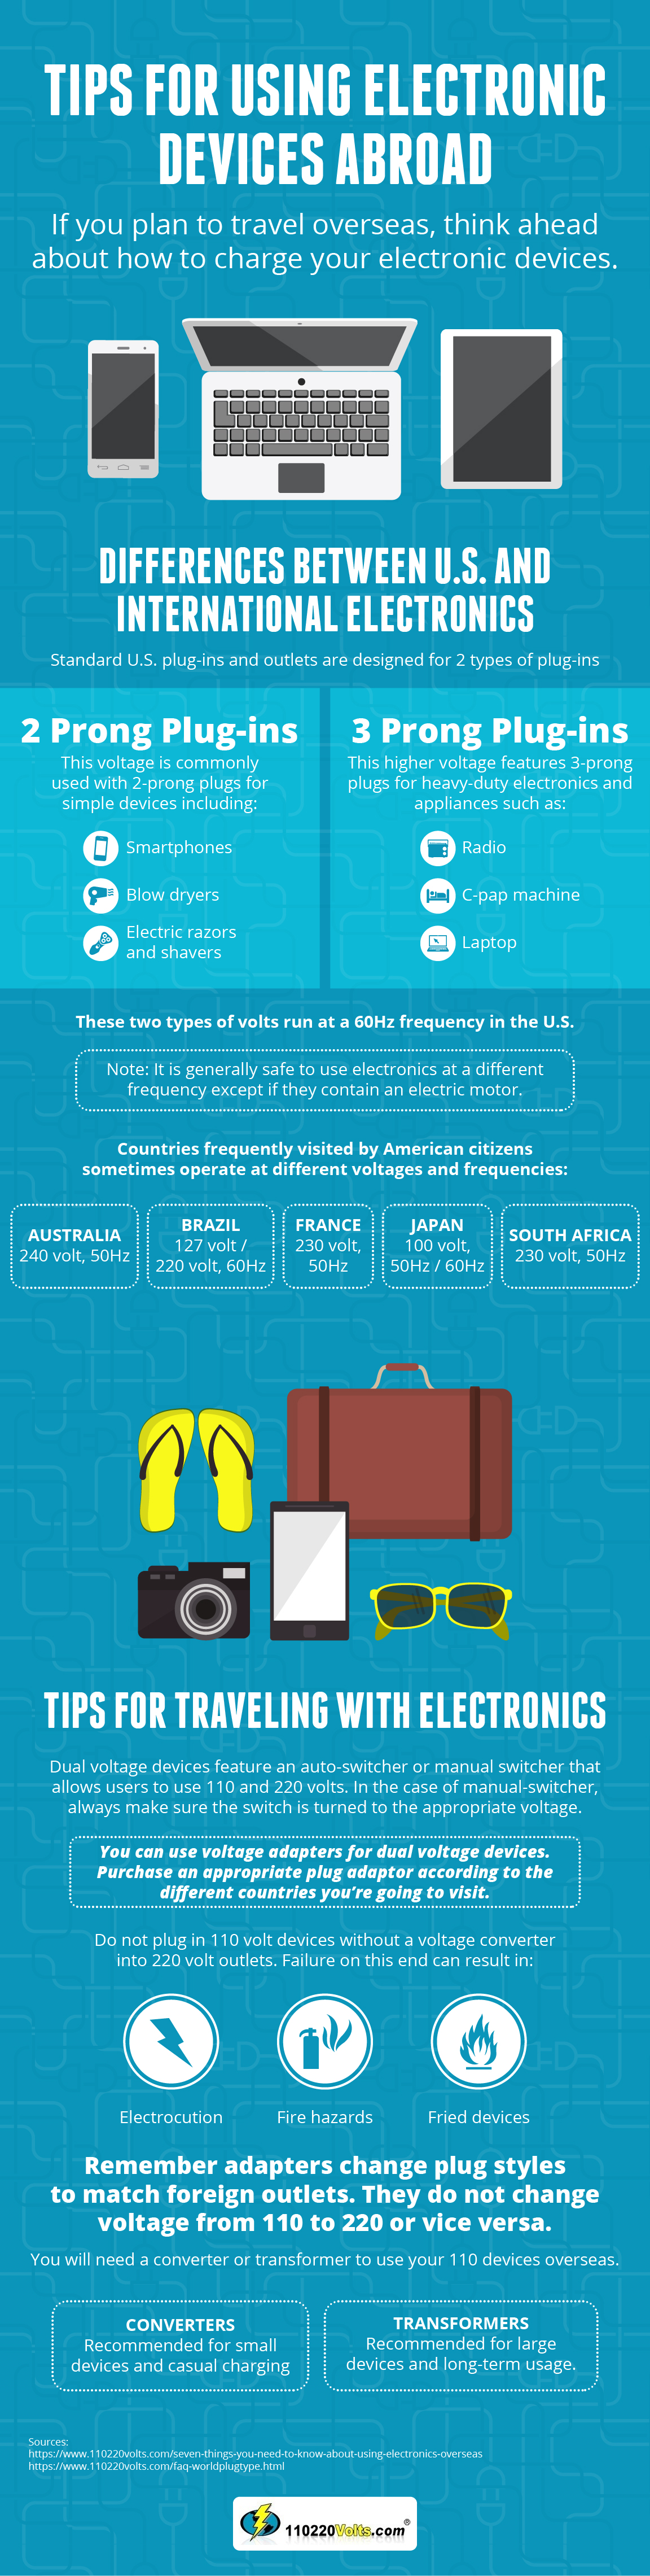 Infographic on Tips for Traveling with Electronics